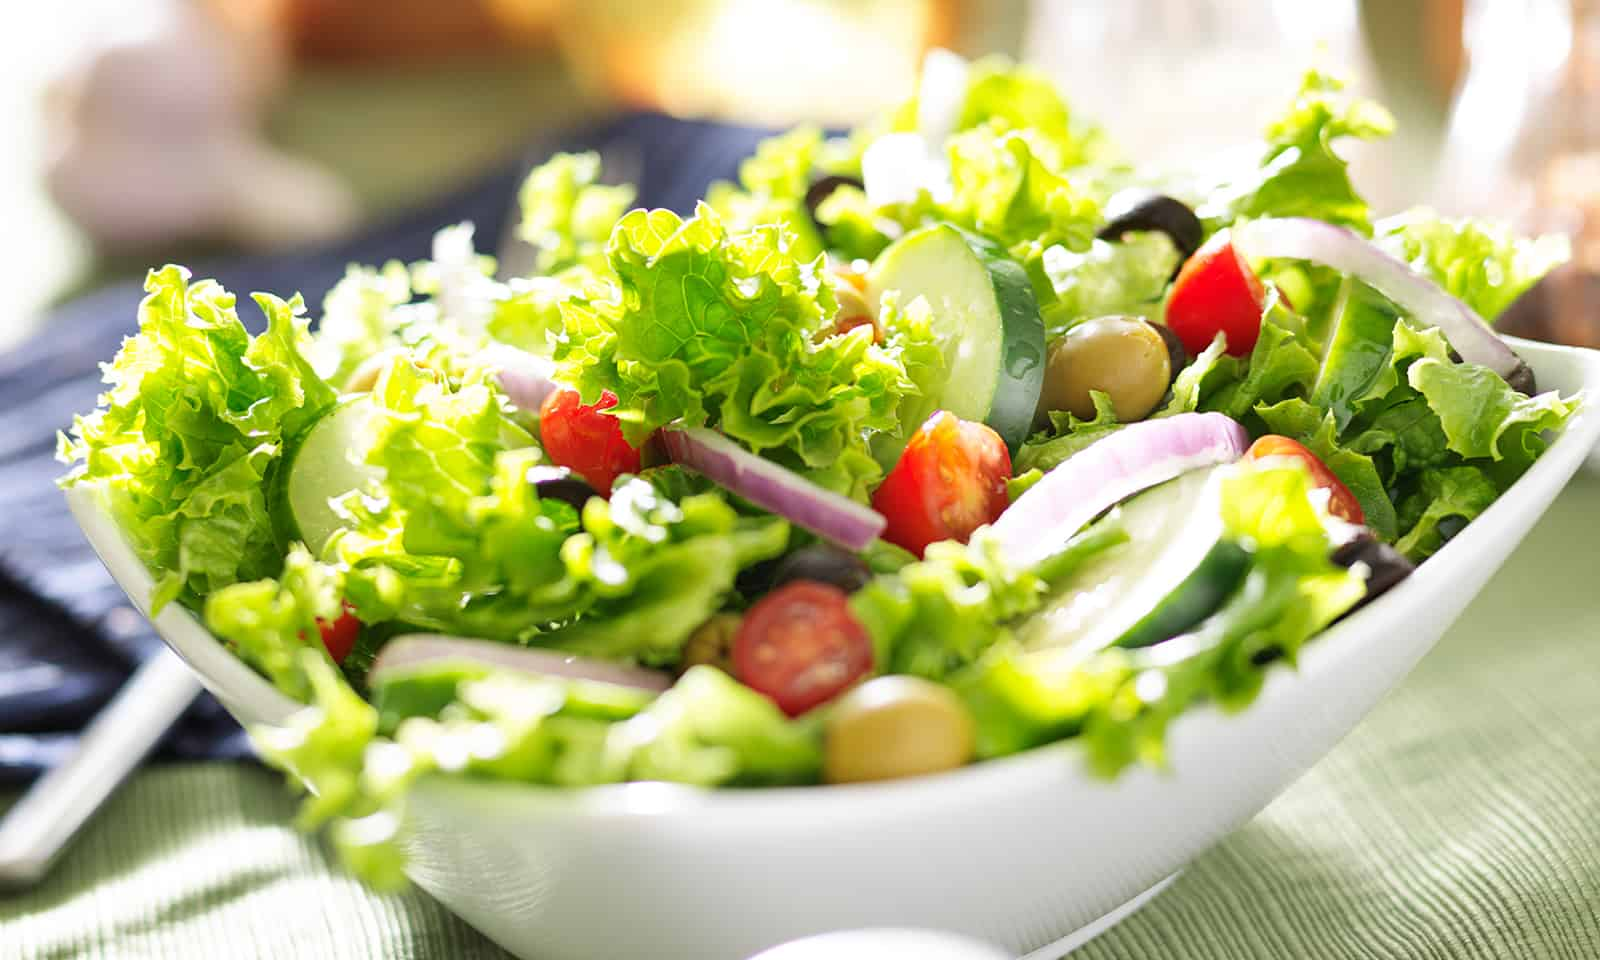 7-Leafy-Greens-Rich-in-Protein-main-image